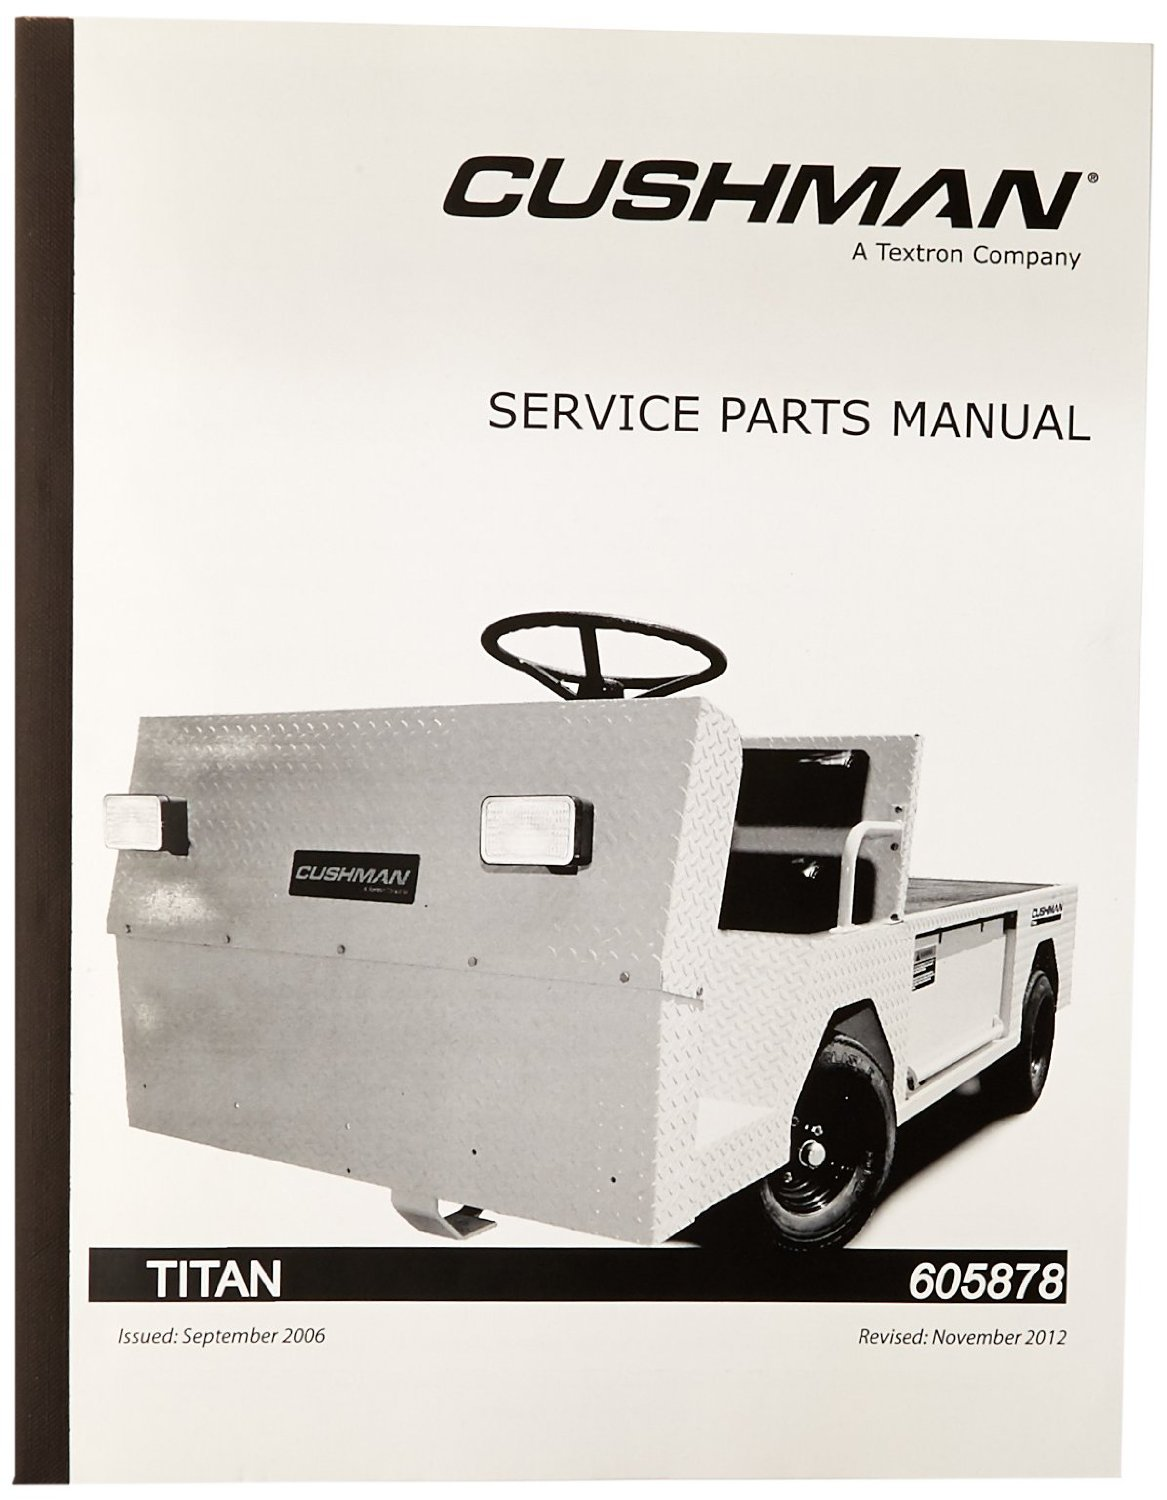 Cheap Cushman Utility Vehicle Find Deals On Minute Miser Wiring Diagram Get Quotations Ezgo 605878 2005 Service Parts Manual For Titan